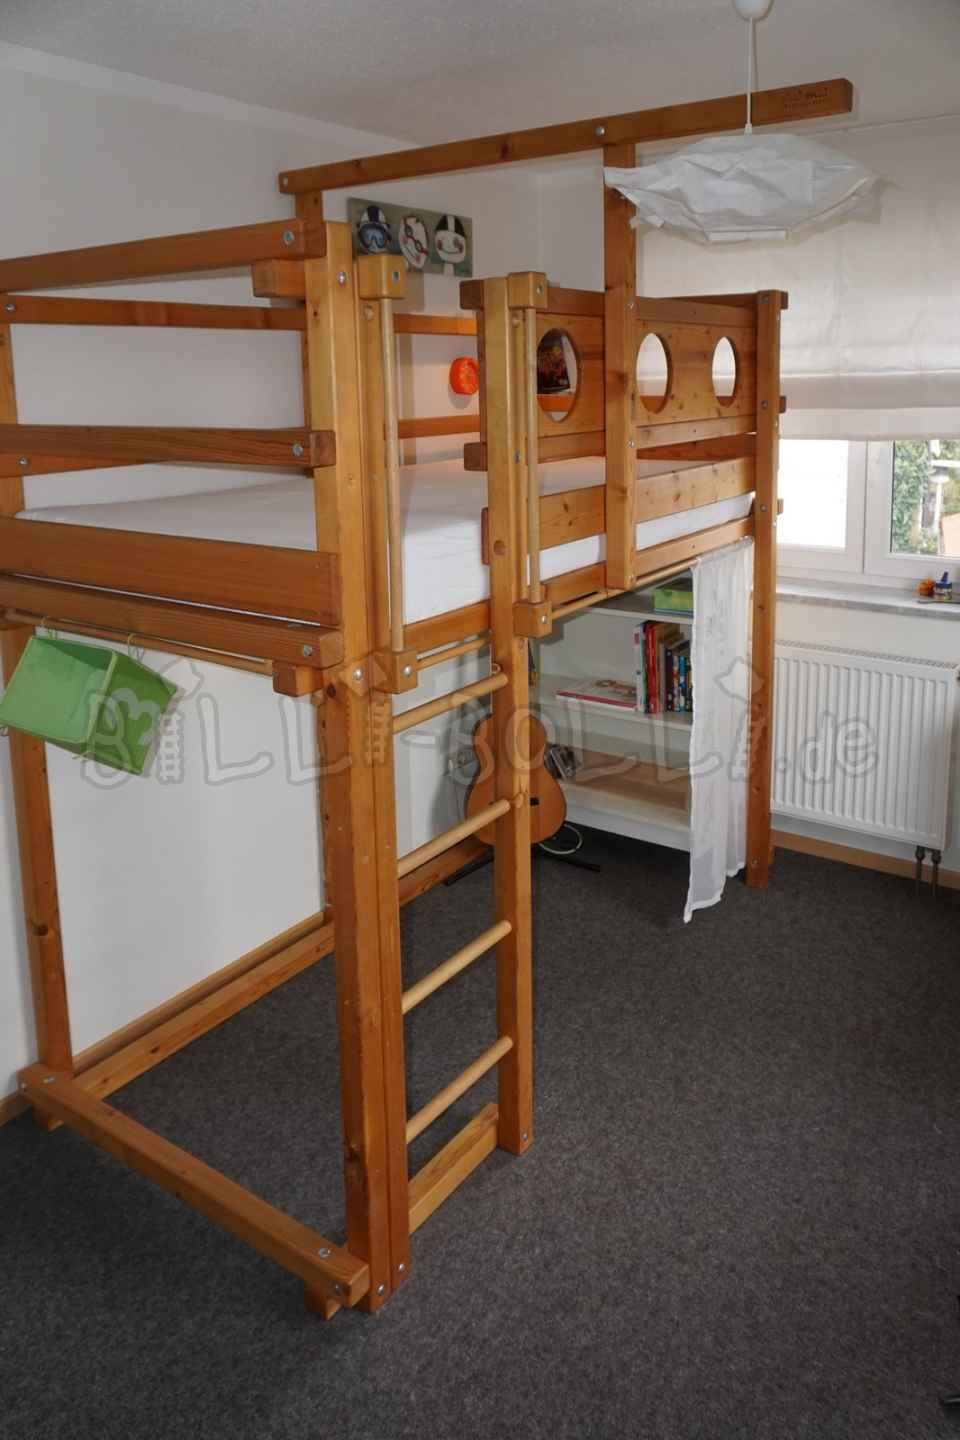 Collating high bed 90 x 200 cm, spruce oiled/waxed (second hand loft bed)